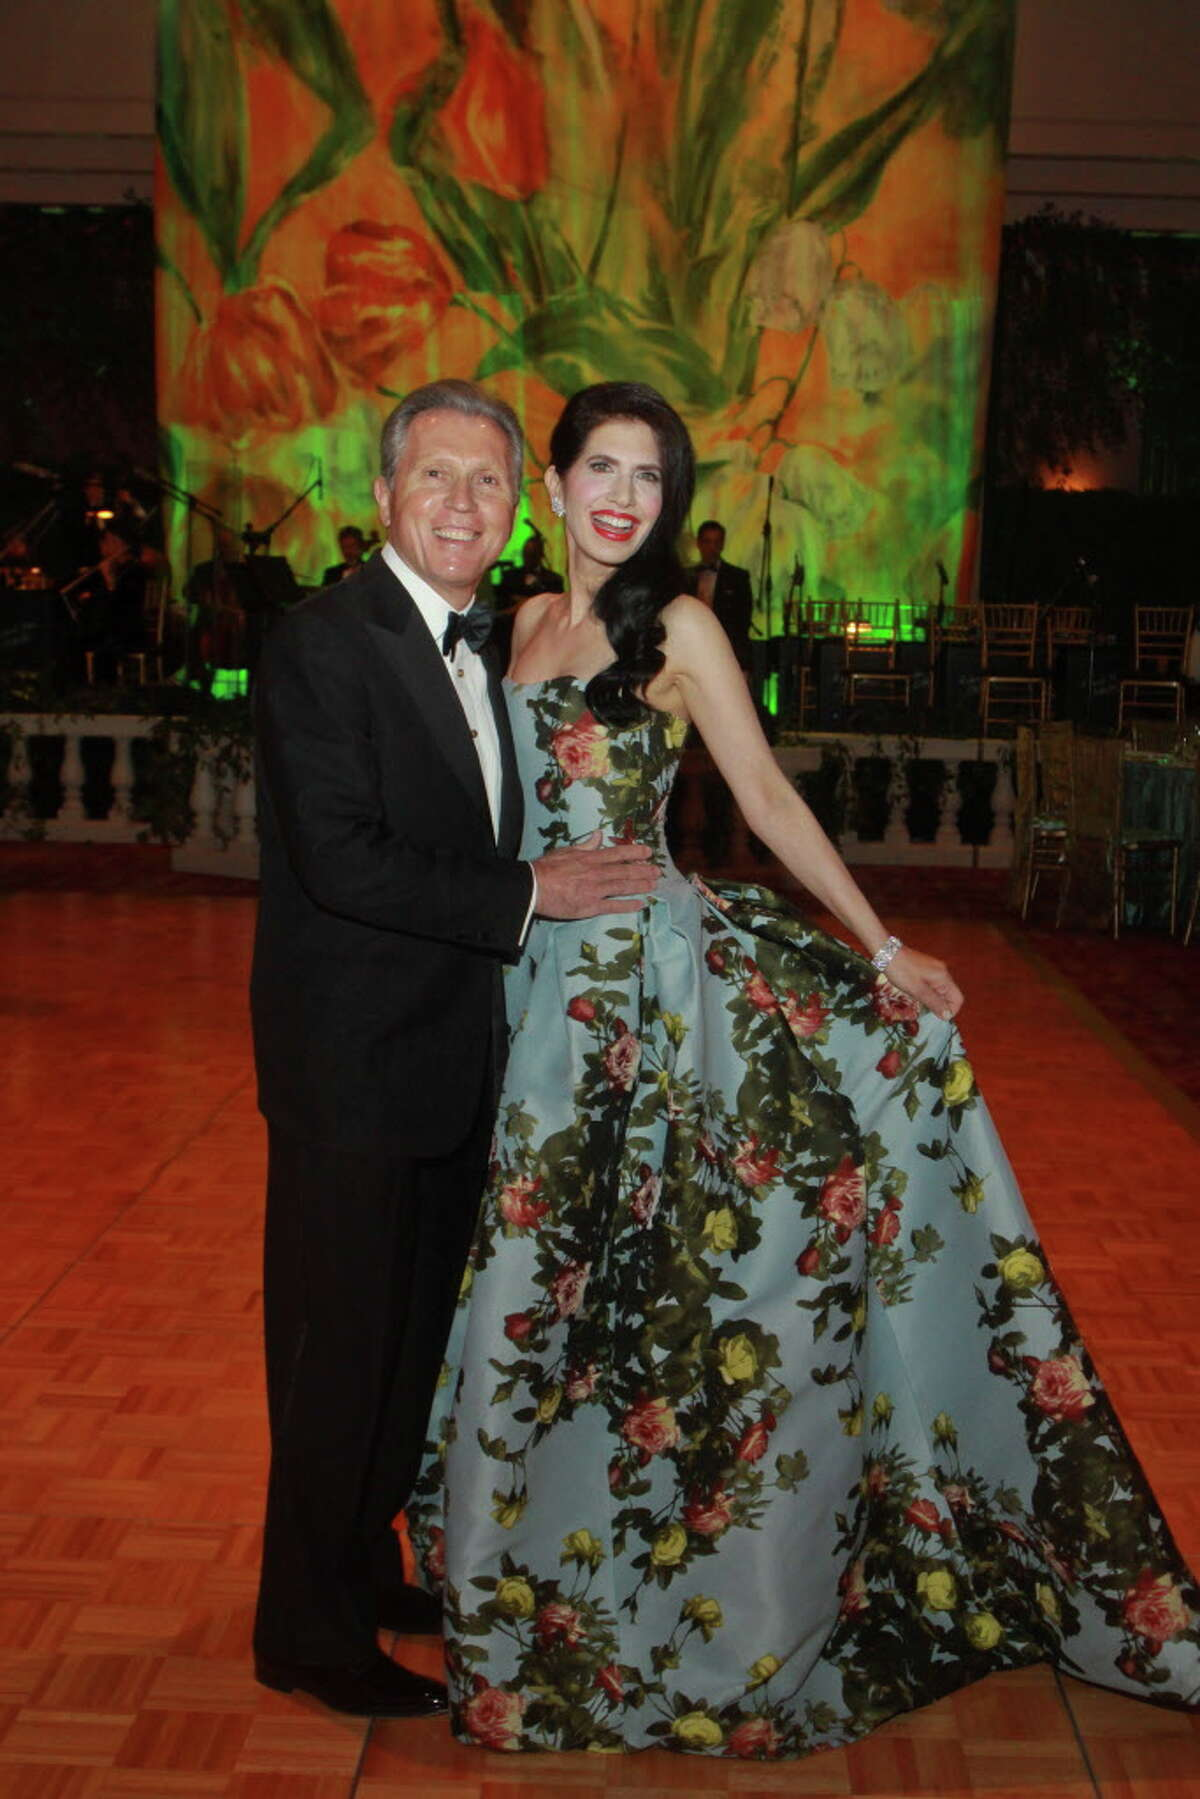 """(For the Chronicle/Gary Fountain, February 16, 2013) Chairs Kelli Cohen Fein and Martin Fein at the """"Rite of Spring,"""" Houston Ballet Ball."""